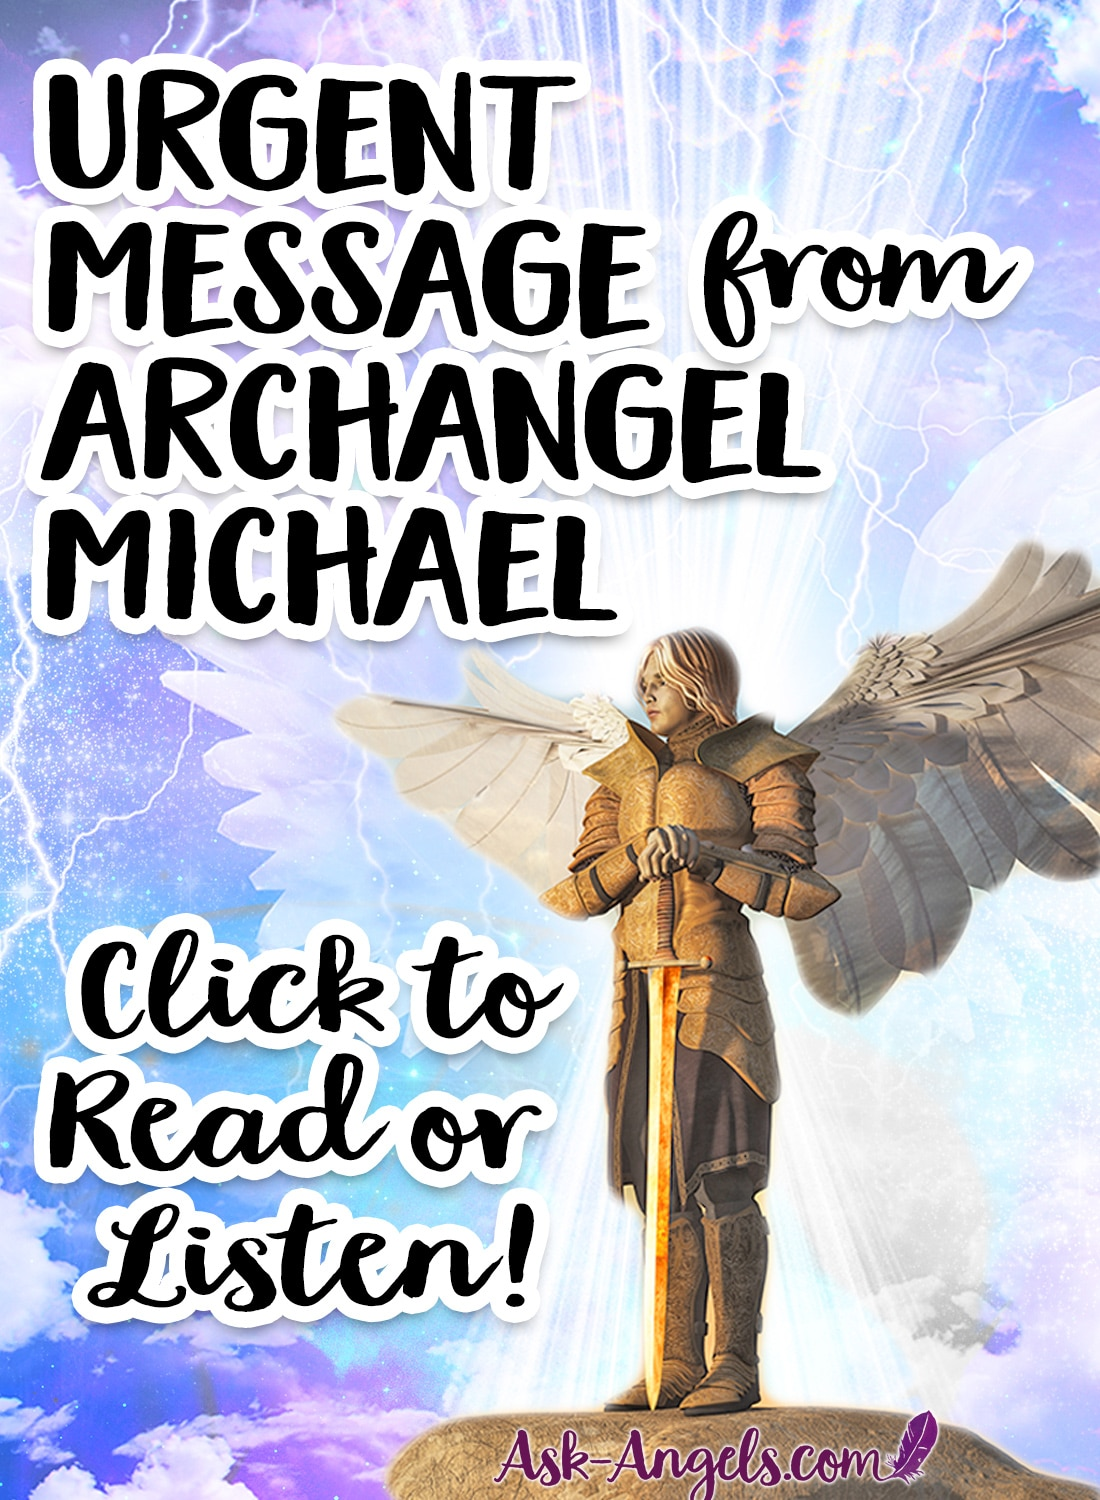 Channeled Message from Archangel Michael